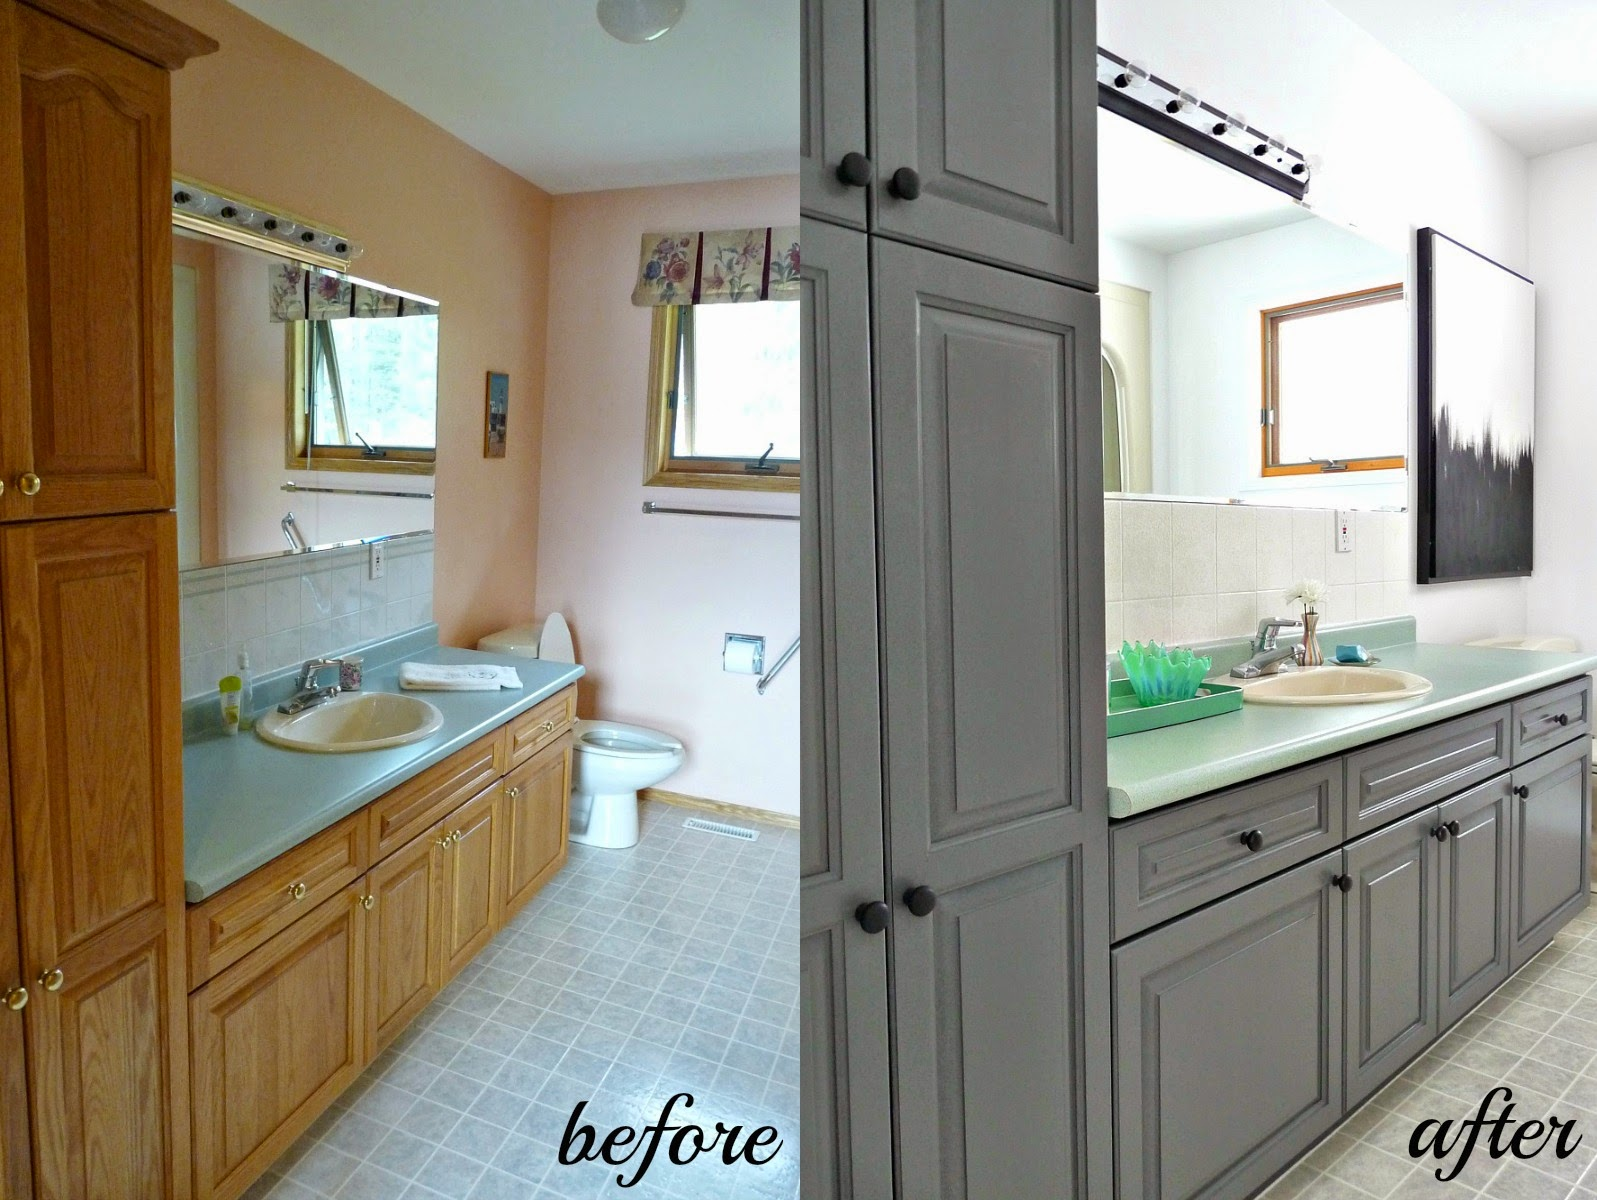 Can Kitchen Cabinets Be Refinished Cabinet Refinishing 101 Latex Paint Vs Stain Vs Rust